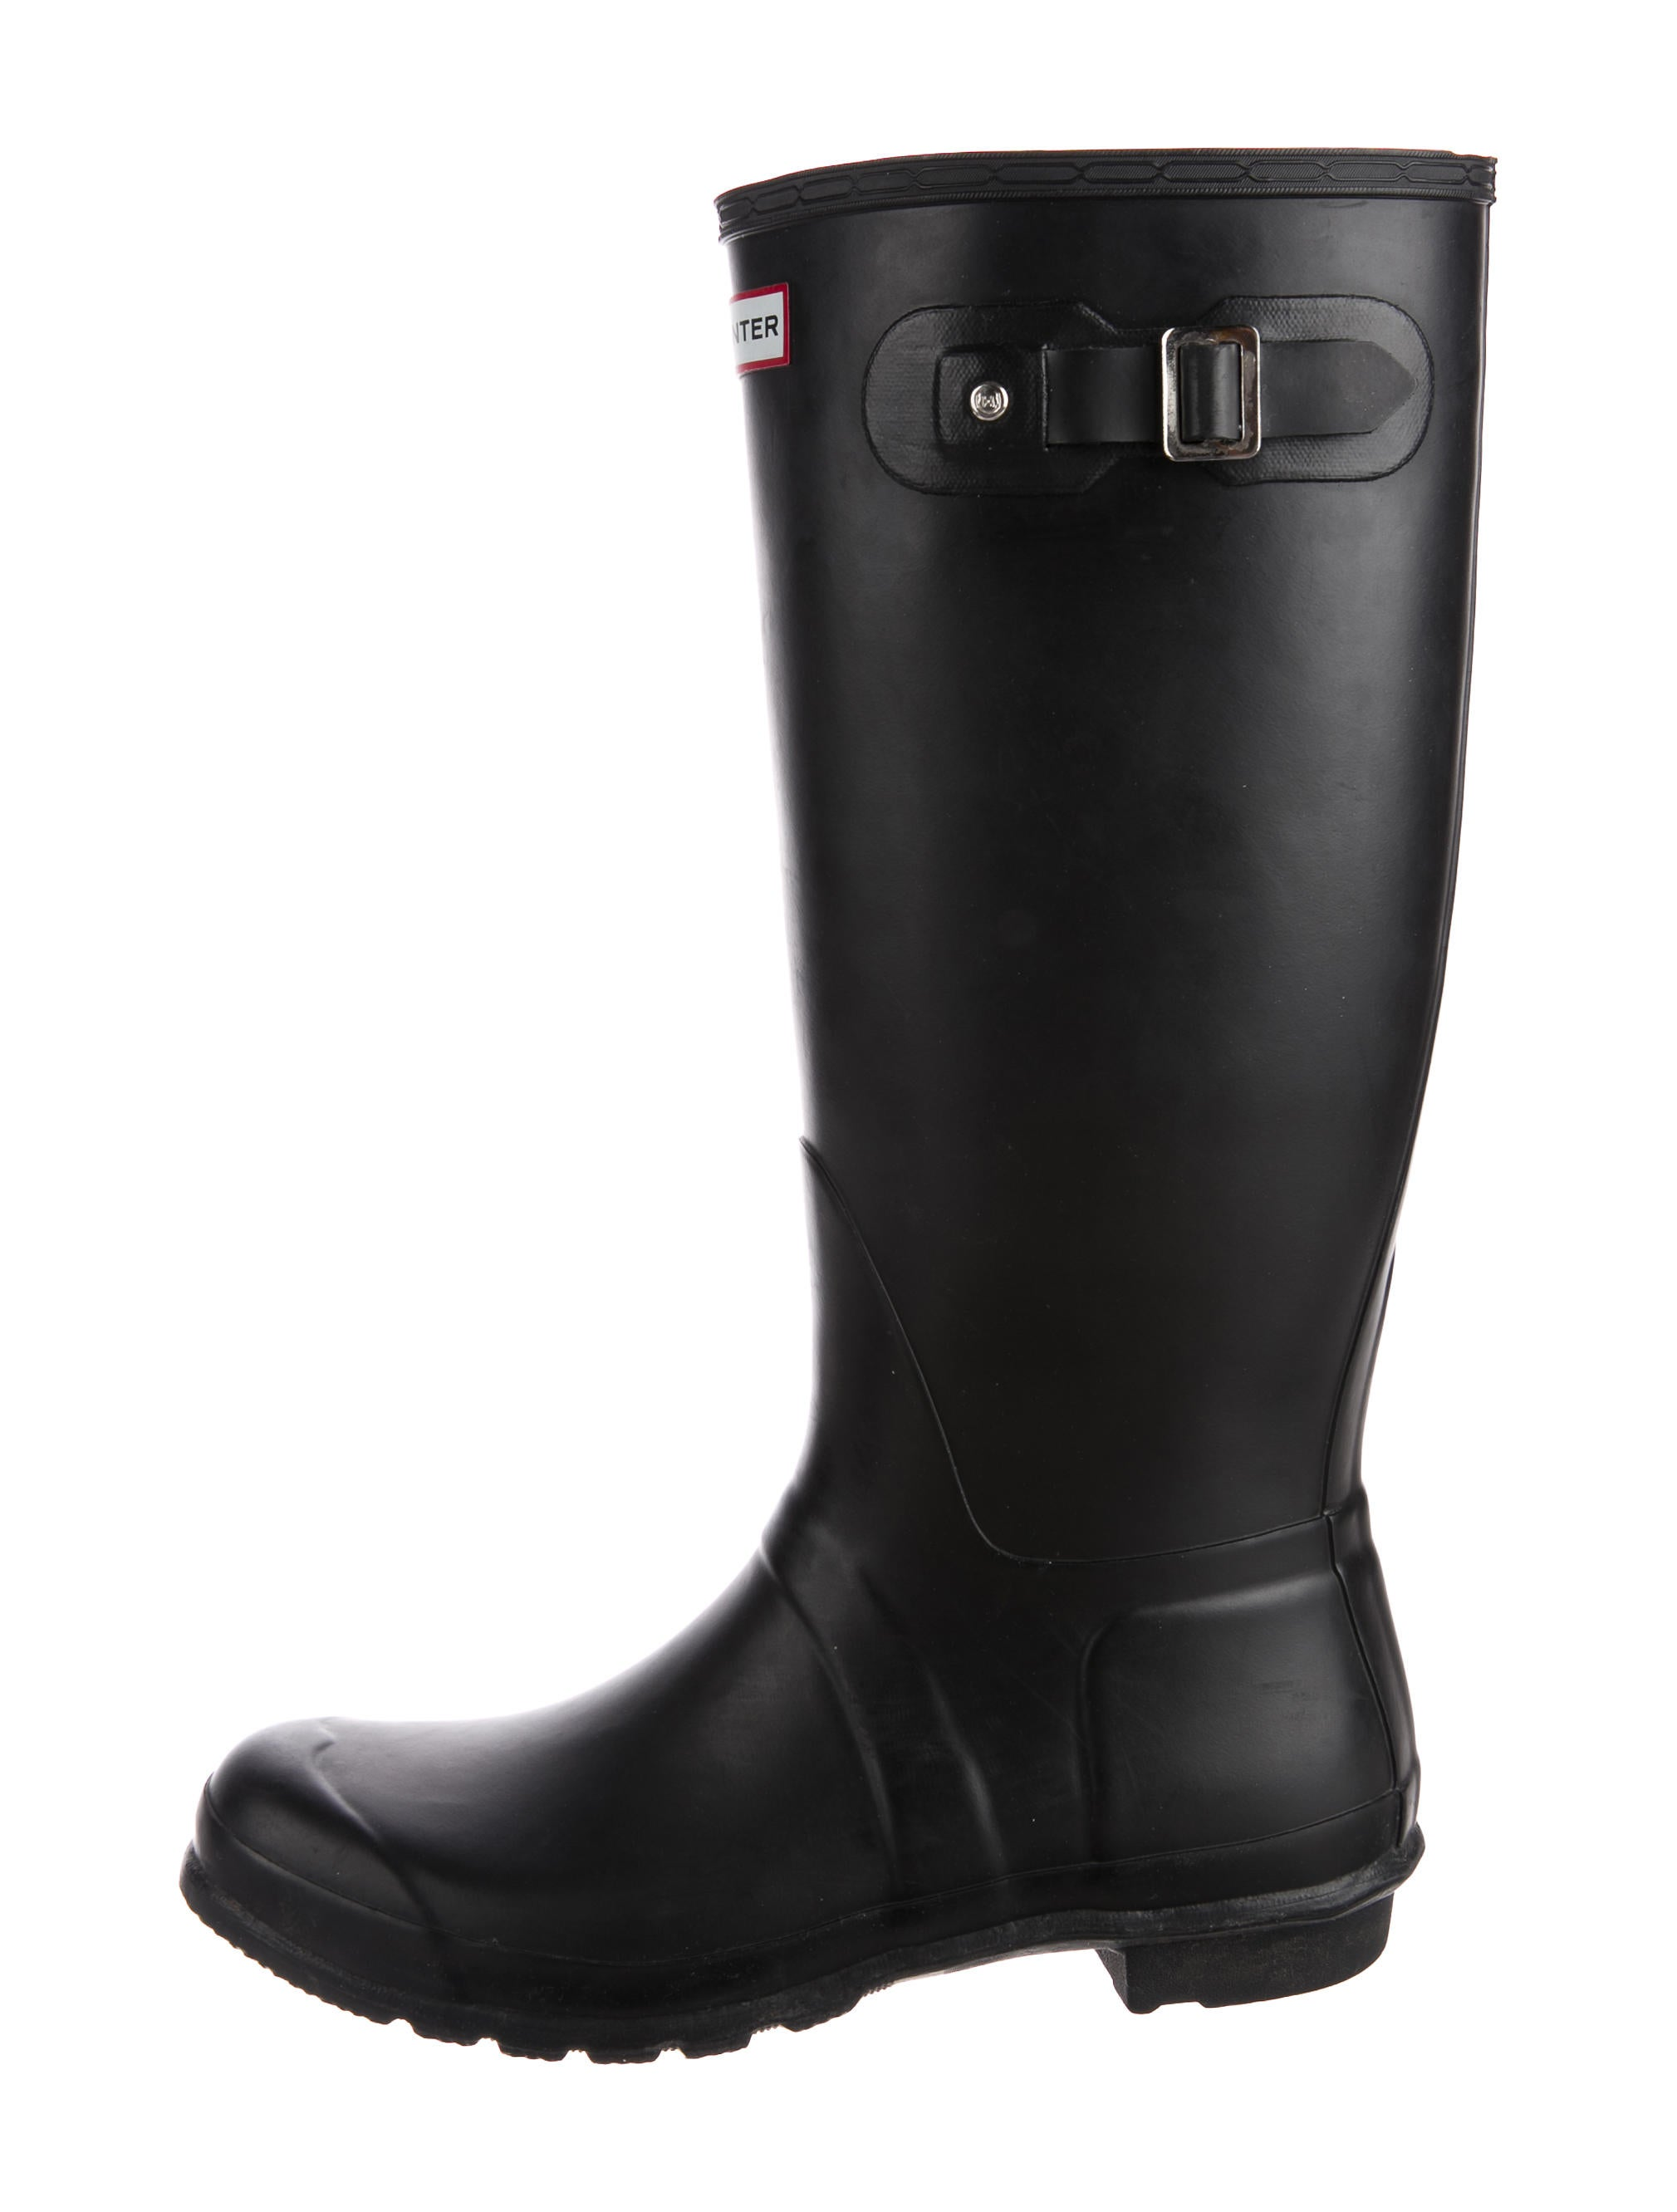 Hunter Rubber Rain Boots - Mens Shoes - WH822199 | The RealReal